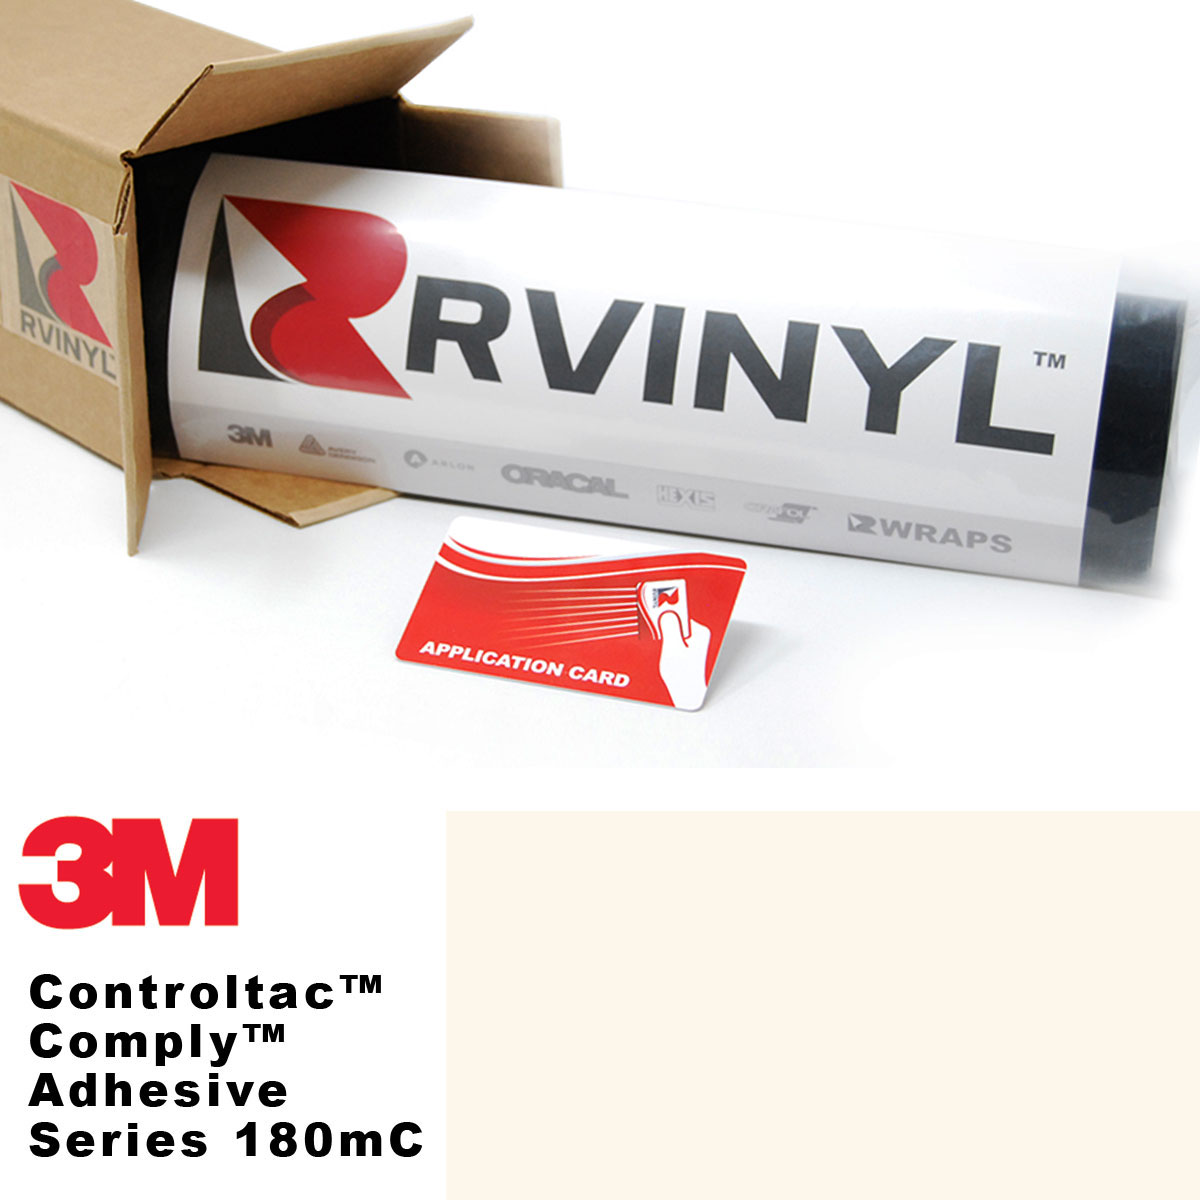 3M Controltac 180mC Antique White Vinyl Film